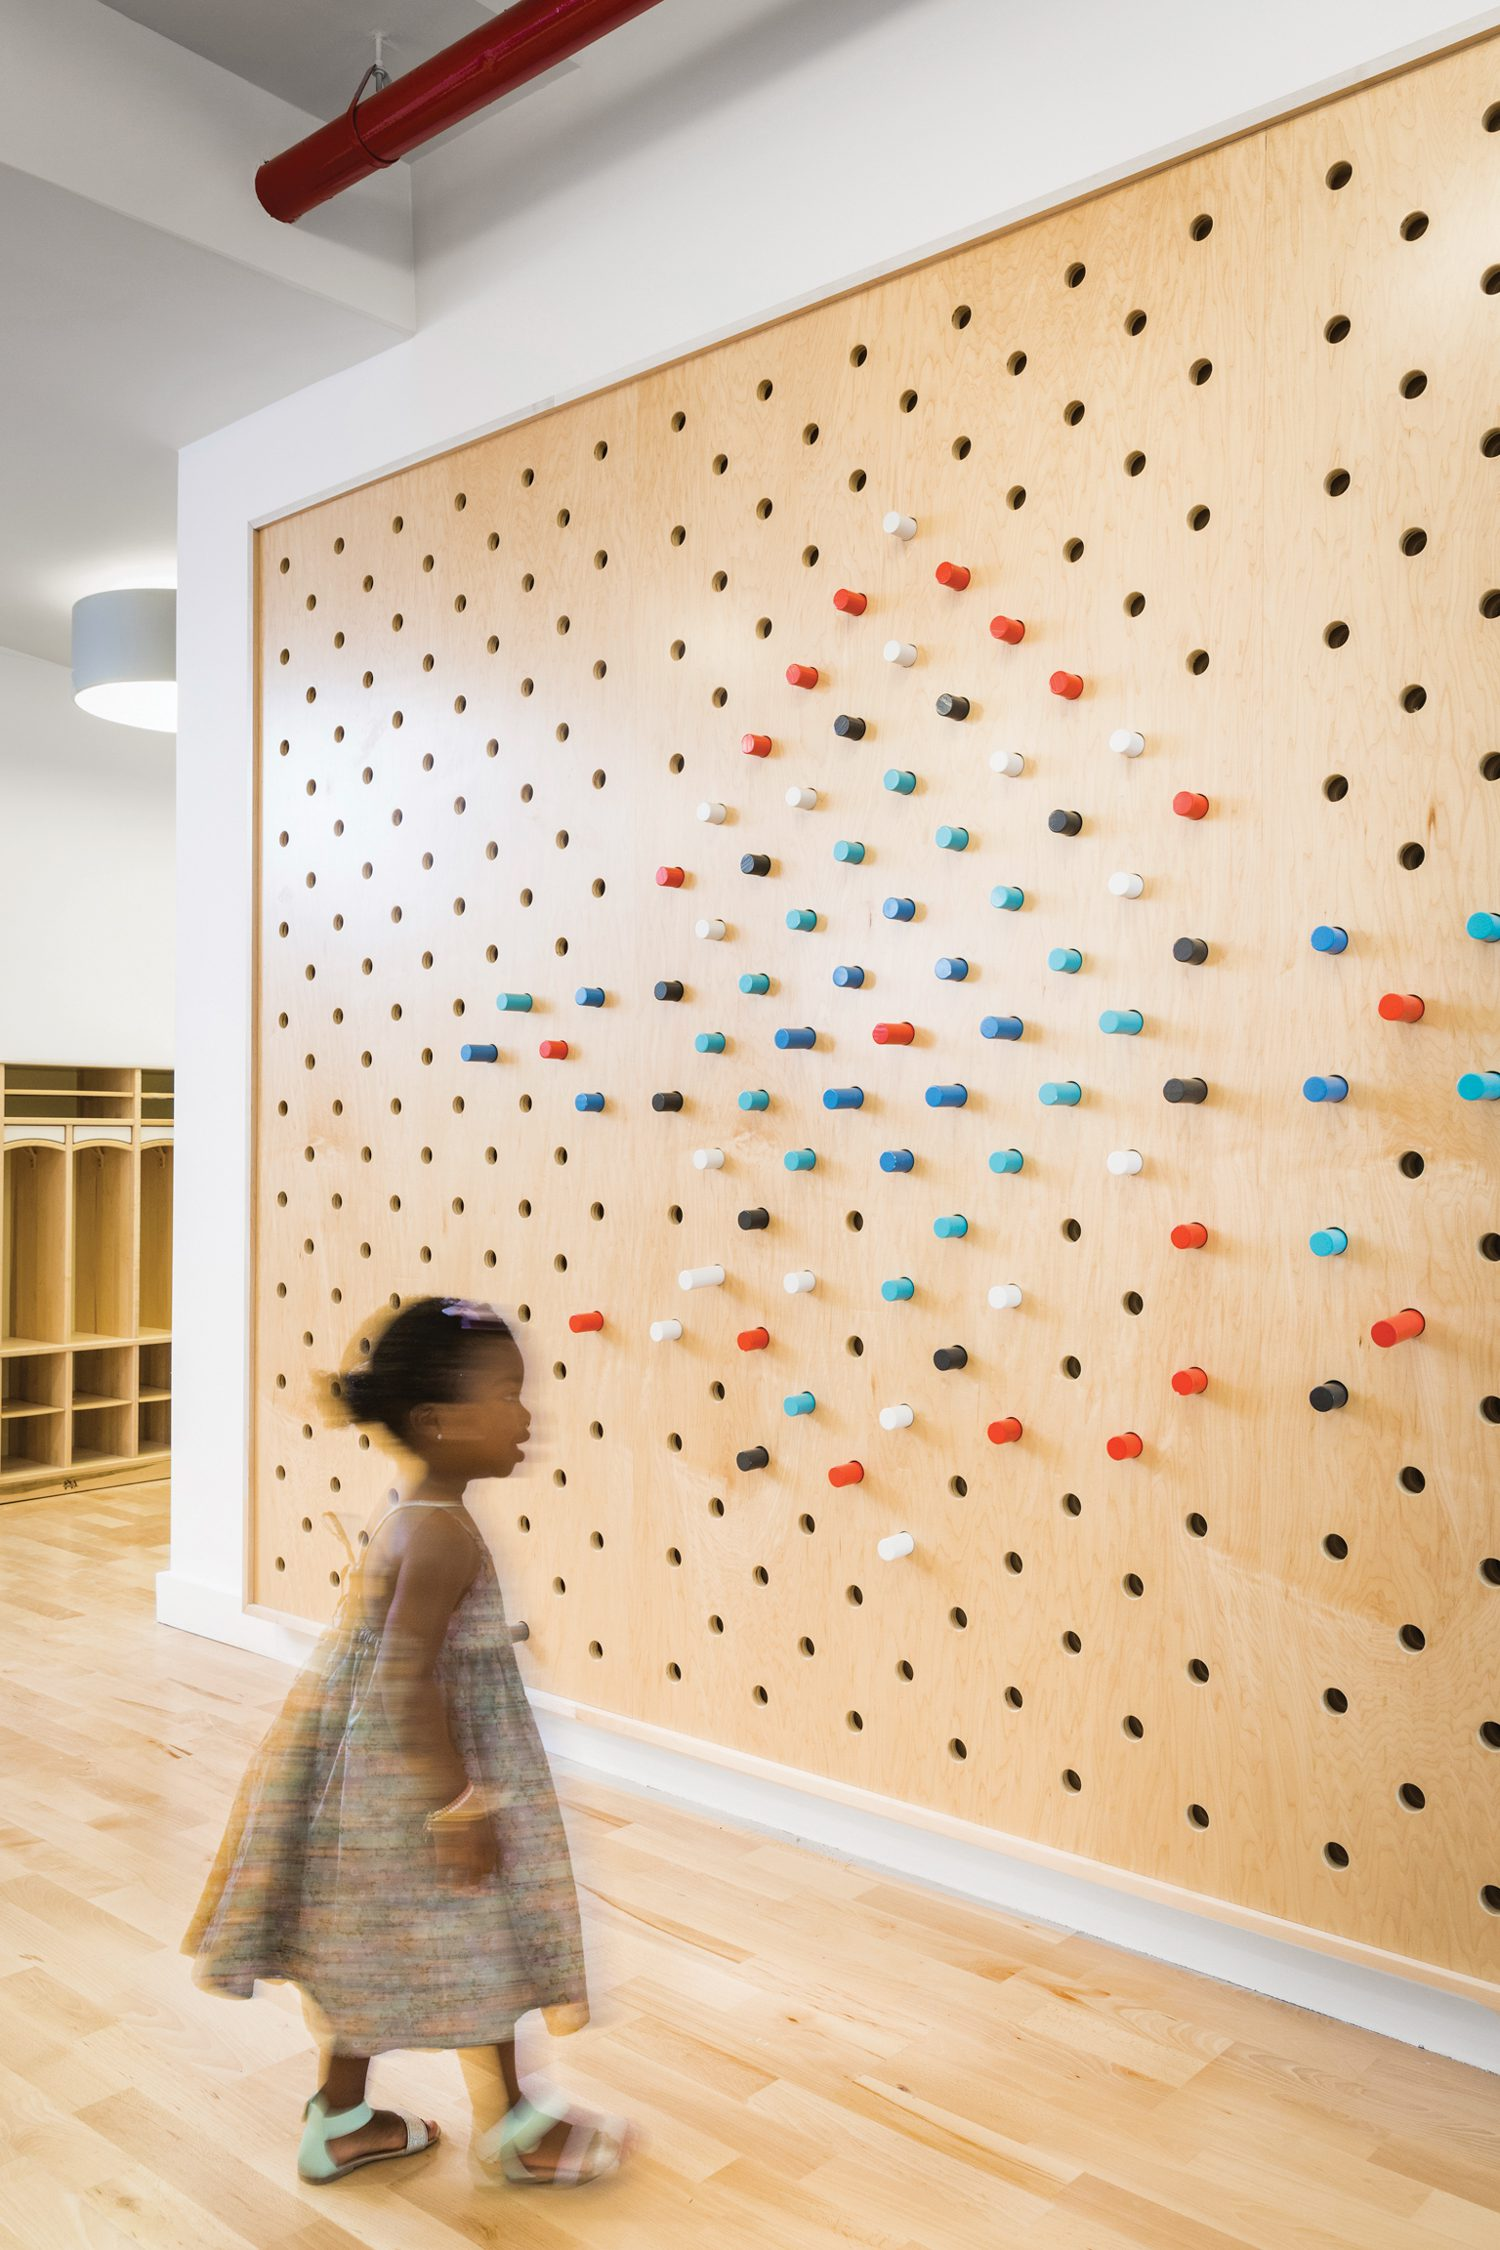 A pegboard feature wall serving a toddler's perspective at the Maple Street School in Prospect Lefferts Gardens, a collaboration with 4 MATIV.